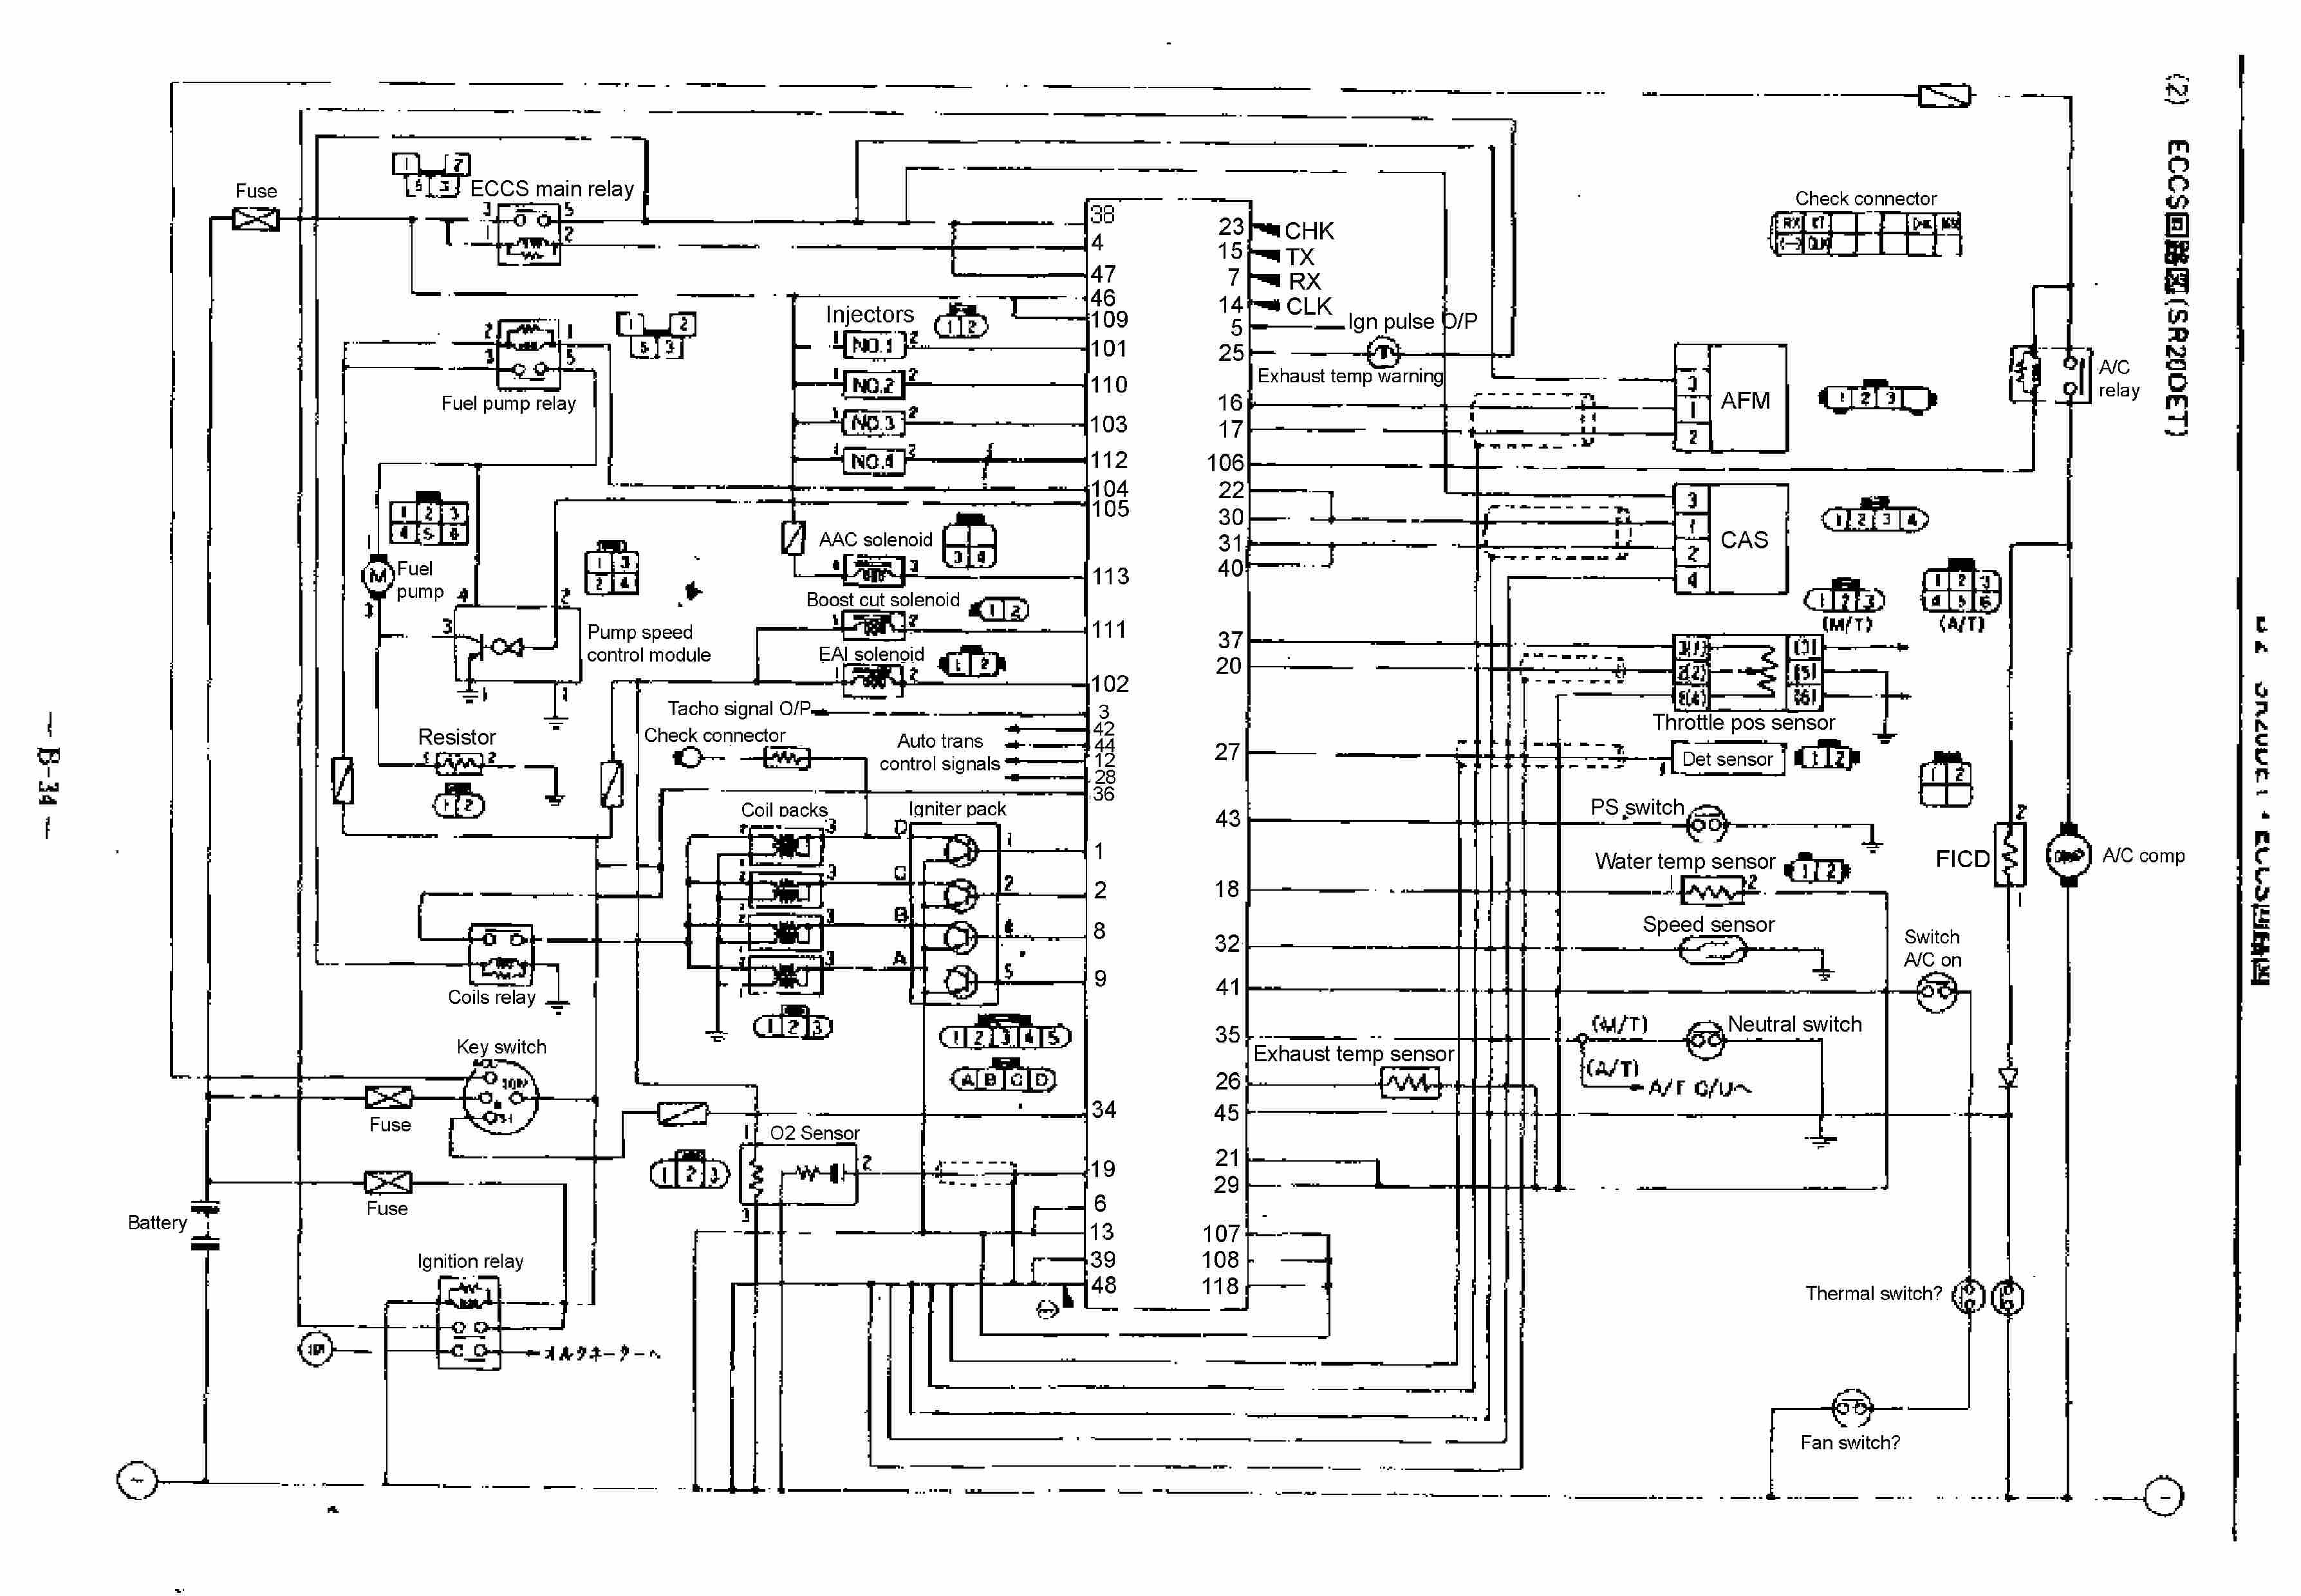 Astonishing Nissan Ga16 Wiring Diagram Nissan Repair Guide Nissan Radiator Wiring Digital Resources Indicompassionincorg